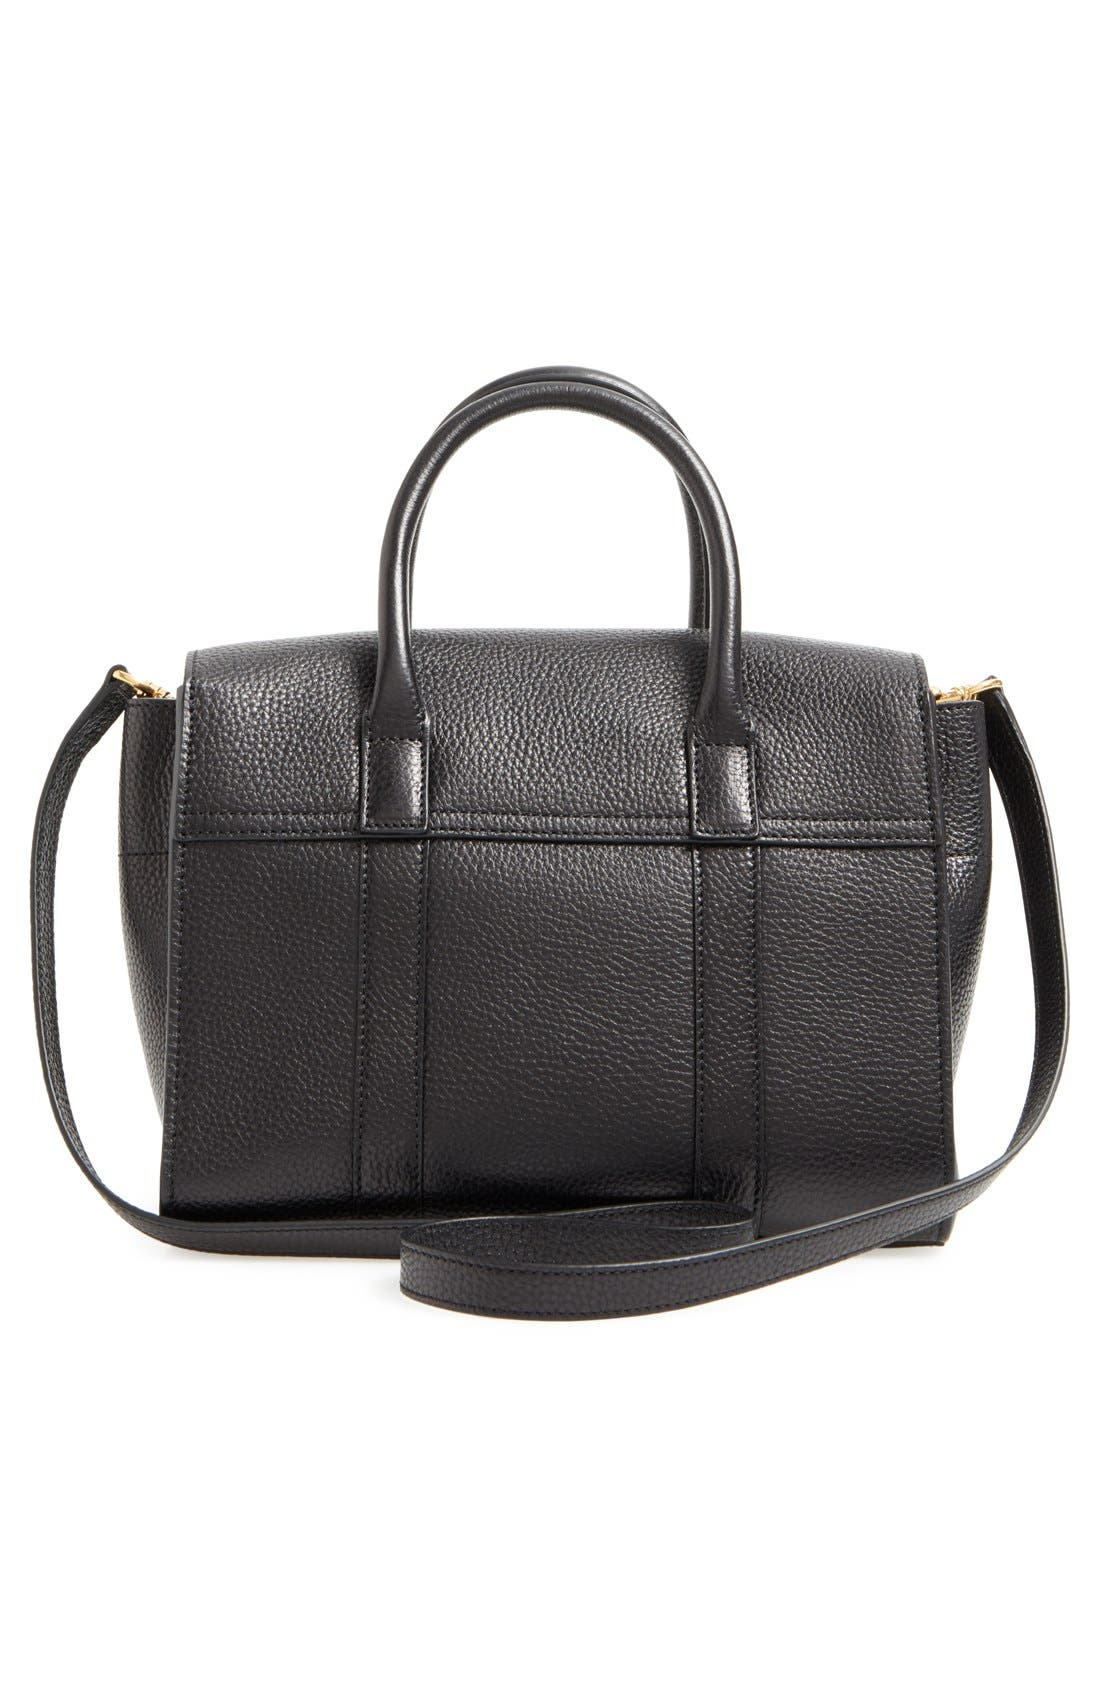 'Small Bayswater' Leather Satchel,                             Alternate thumbnail 3, color,                             001